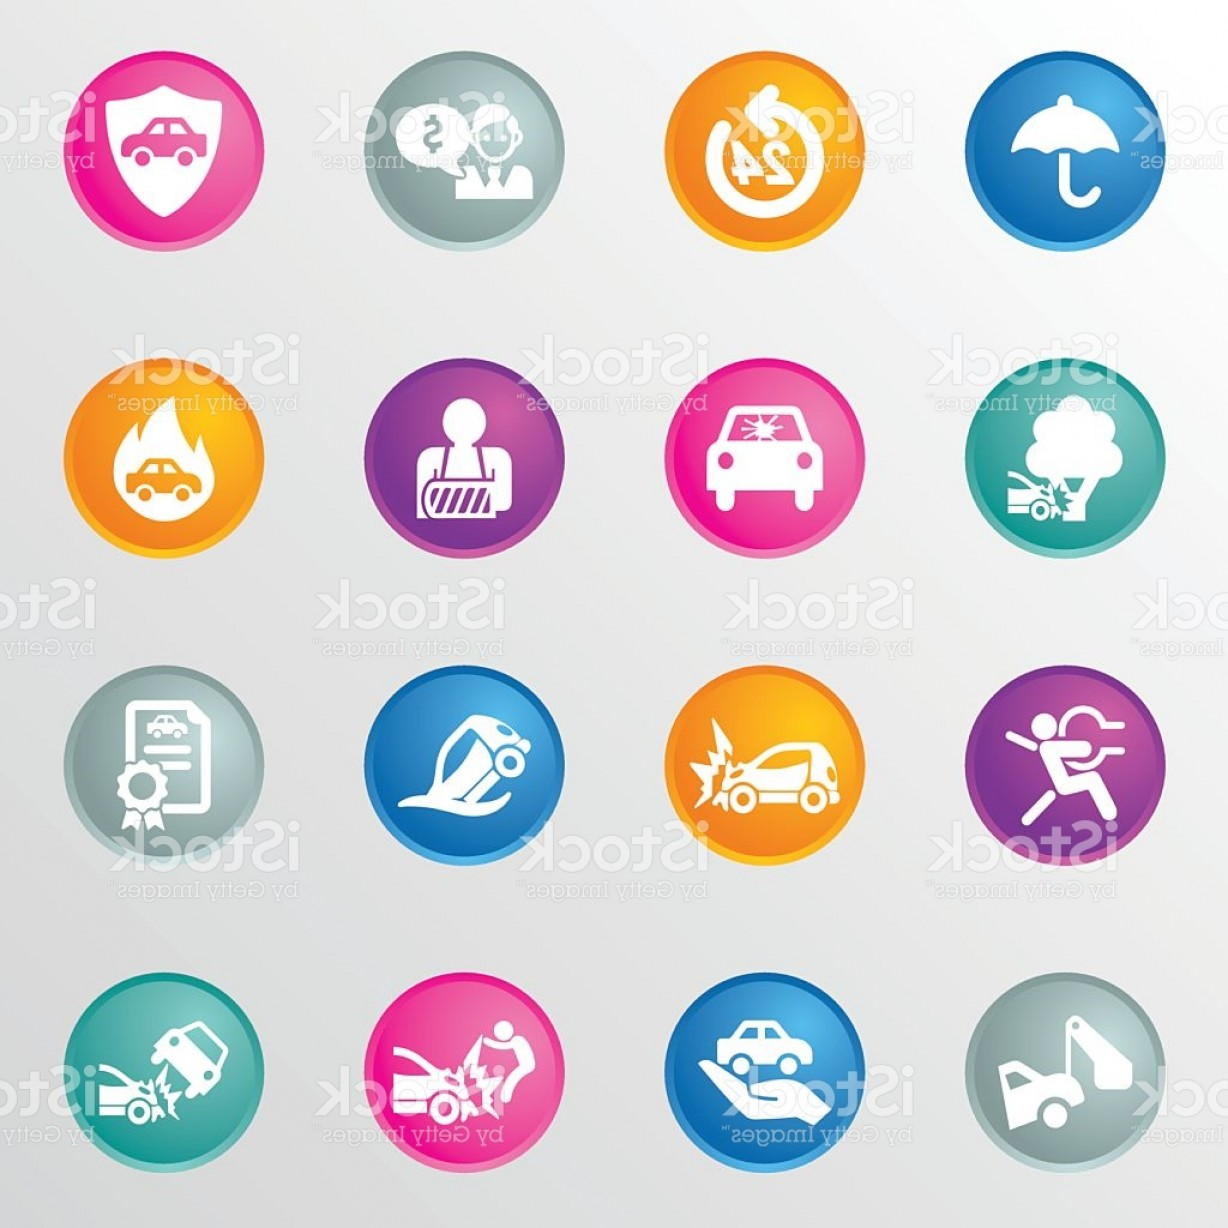 Vector Insurance: Car Insurance Circle Color Icons Gm